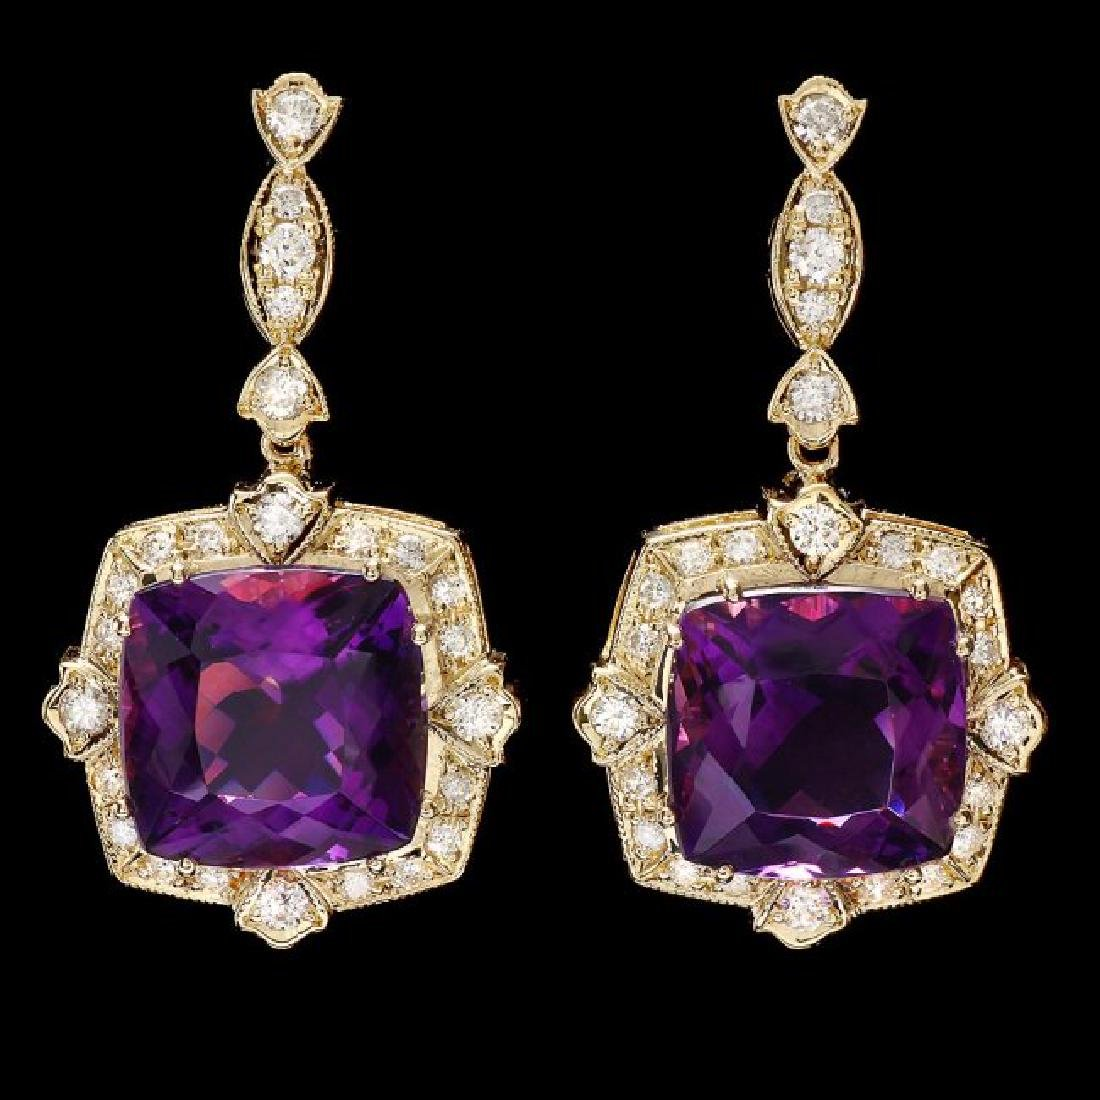 14k Gold 23ct Amethyst 1.6ct Diamond Earrings